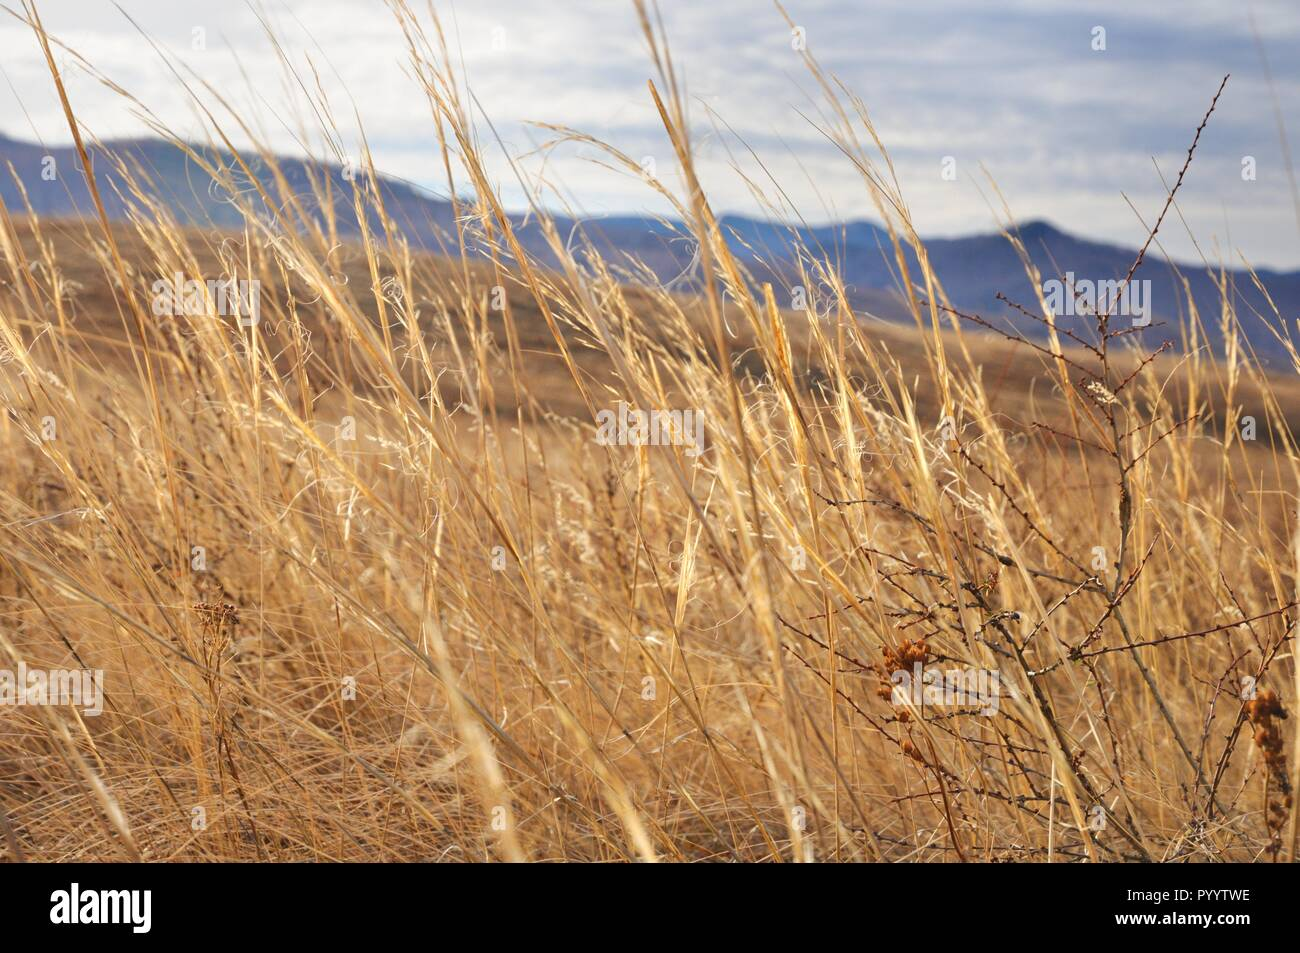 View of yellow autumn grass with a shallow depth of field with gentle hills background in Khakassia, Russia - Stock Image